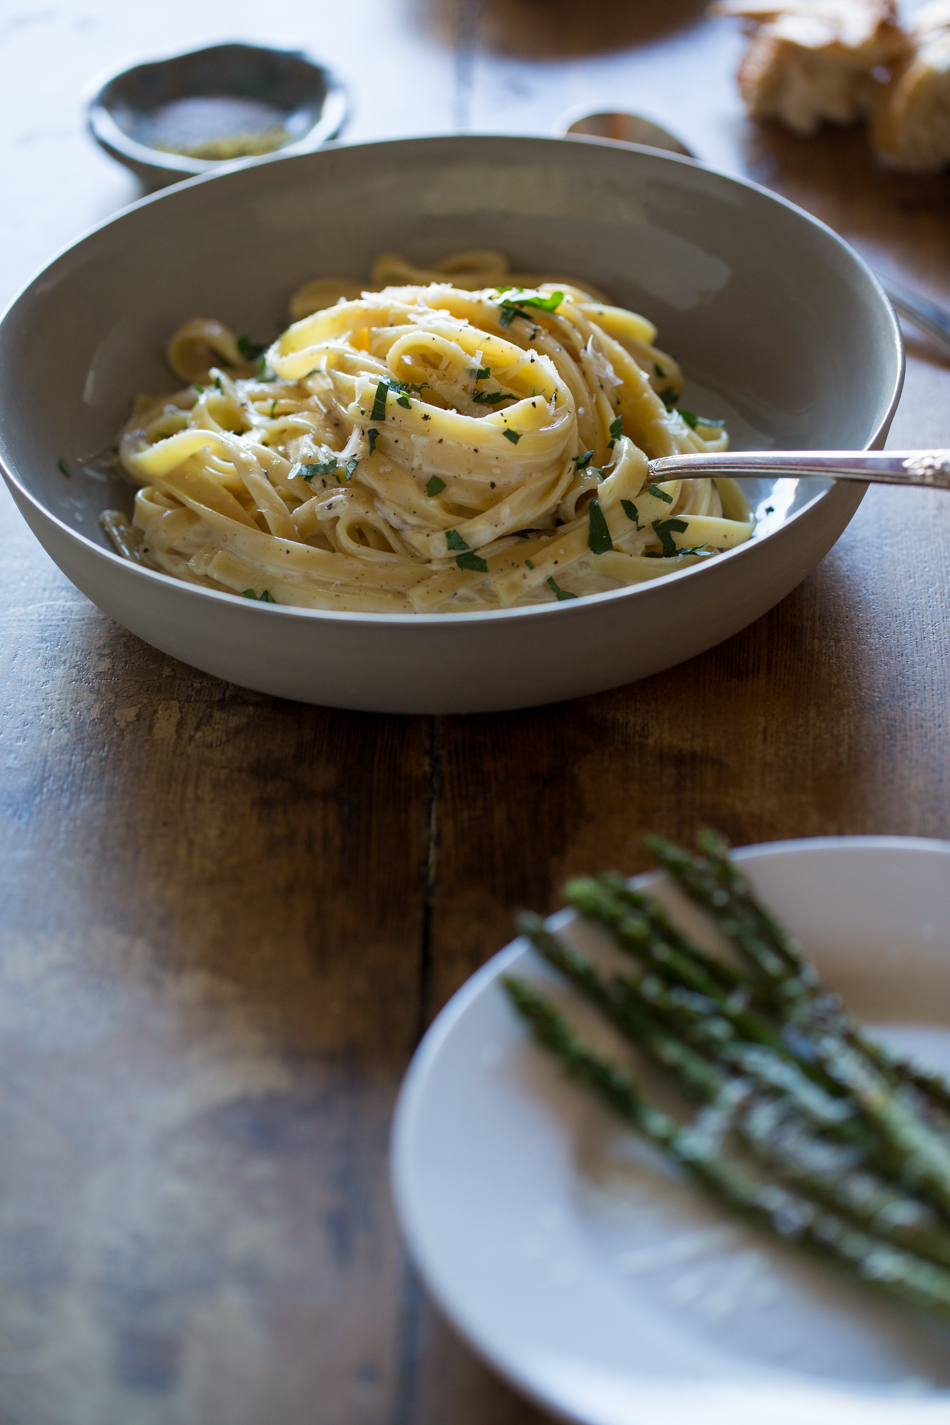 post_4pmPanic_lemon_pepper_pasta-3715